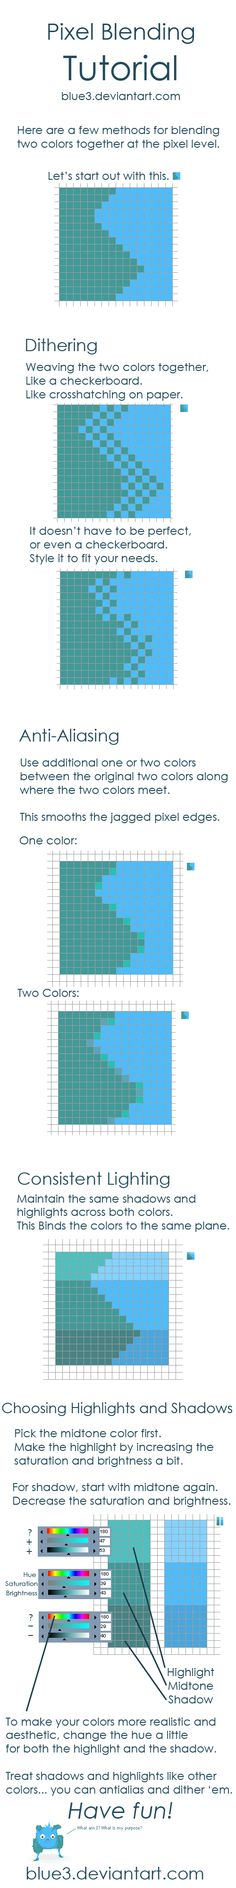 Pixel Blending + Shading Tips by BluE3.deviantart.com on @deviantART